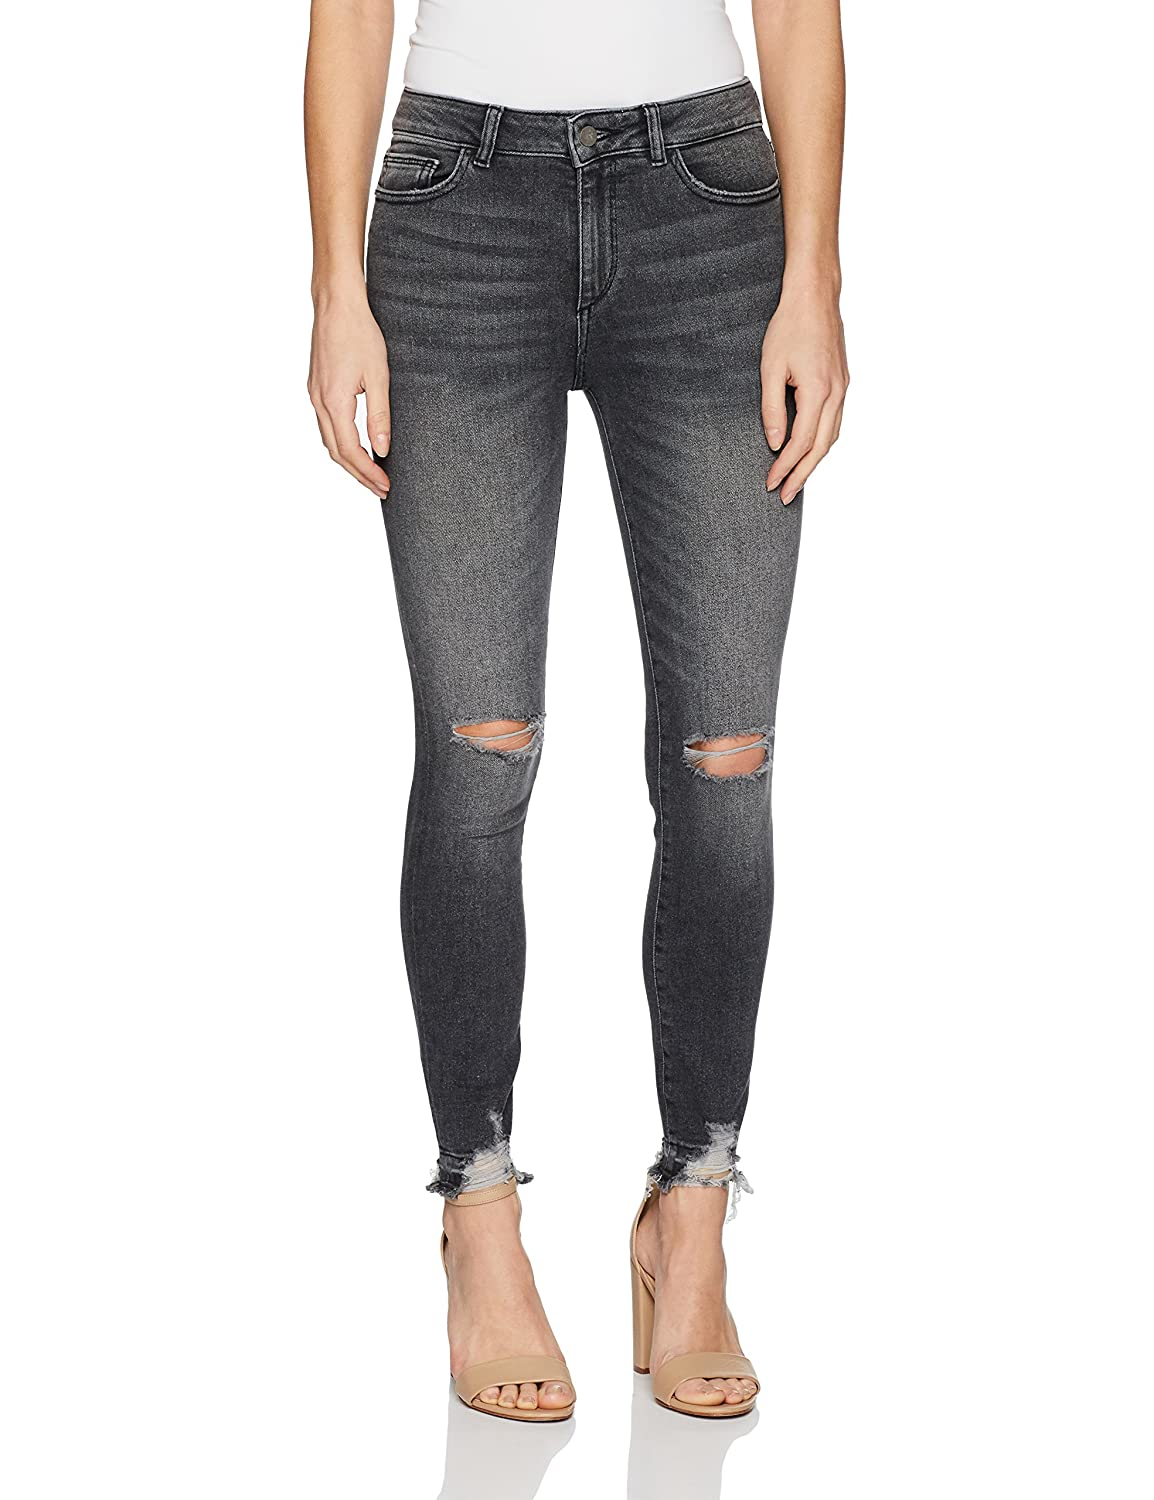 Light Smoke DL1961 Womens Farrow Instaslim High Rise Skinny in Hail